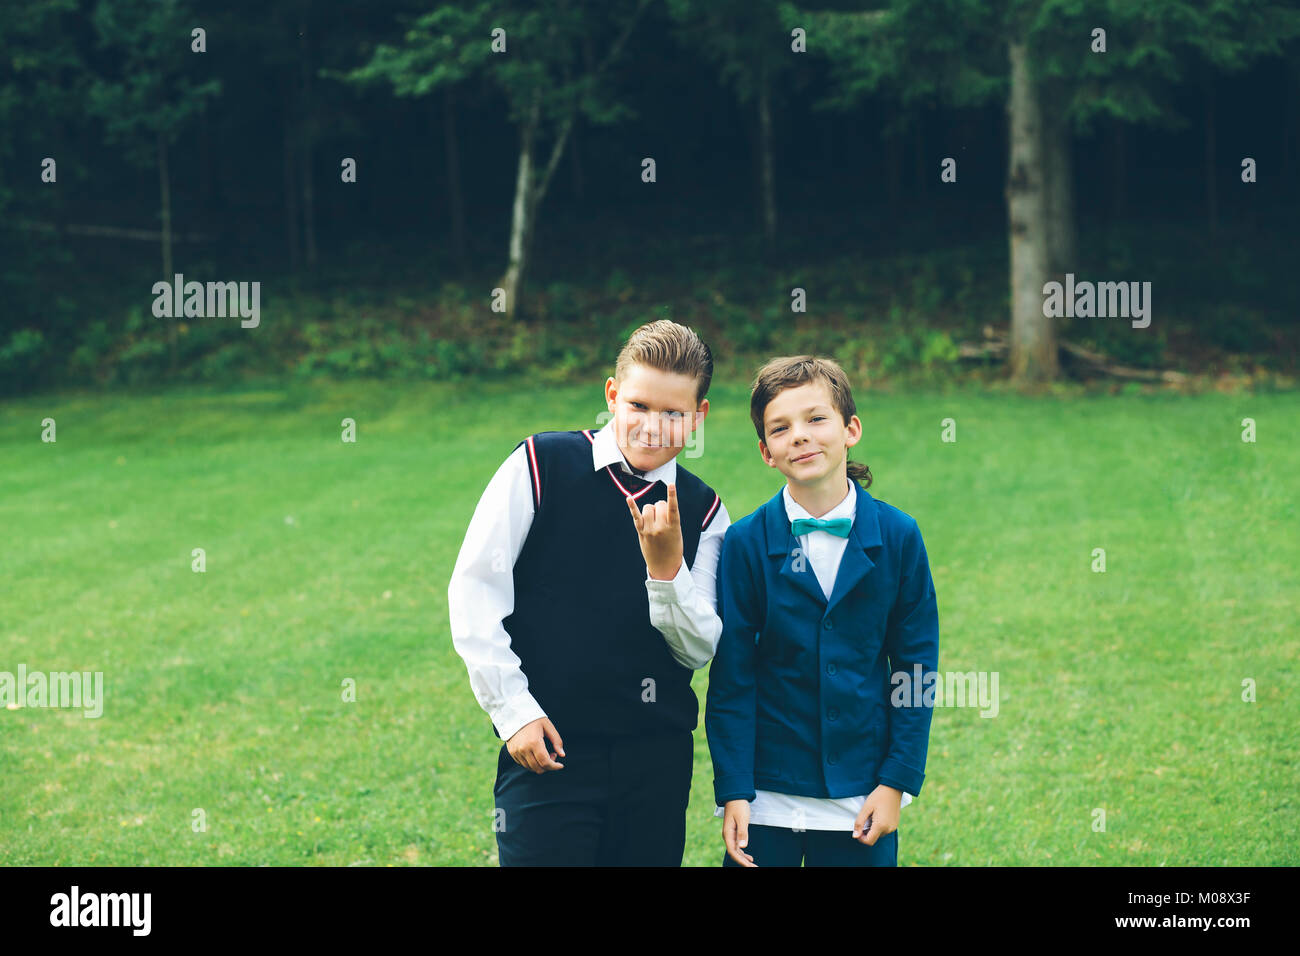 Two boys, brothers, friends dressed up in formal wear make fun in front of a forest on a lawn in summer. - Stock Image